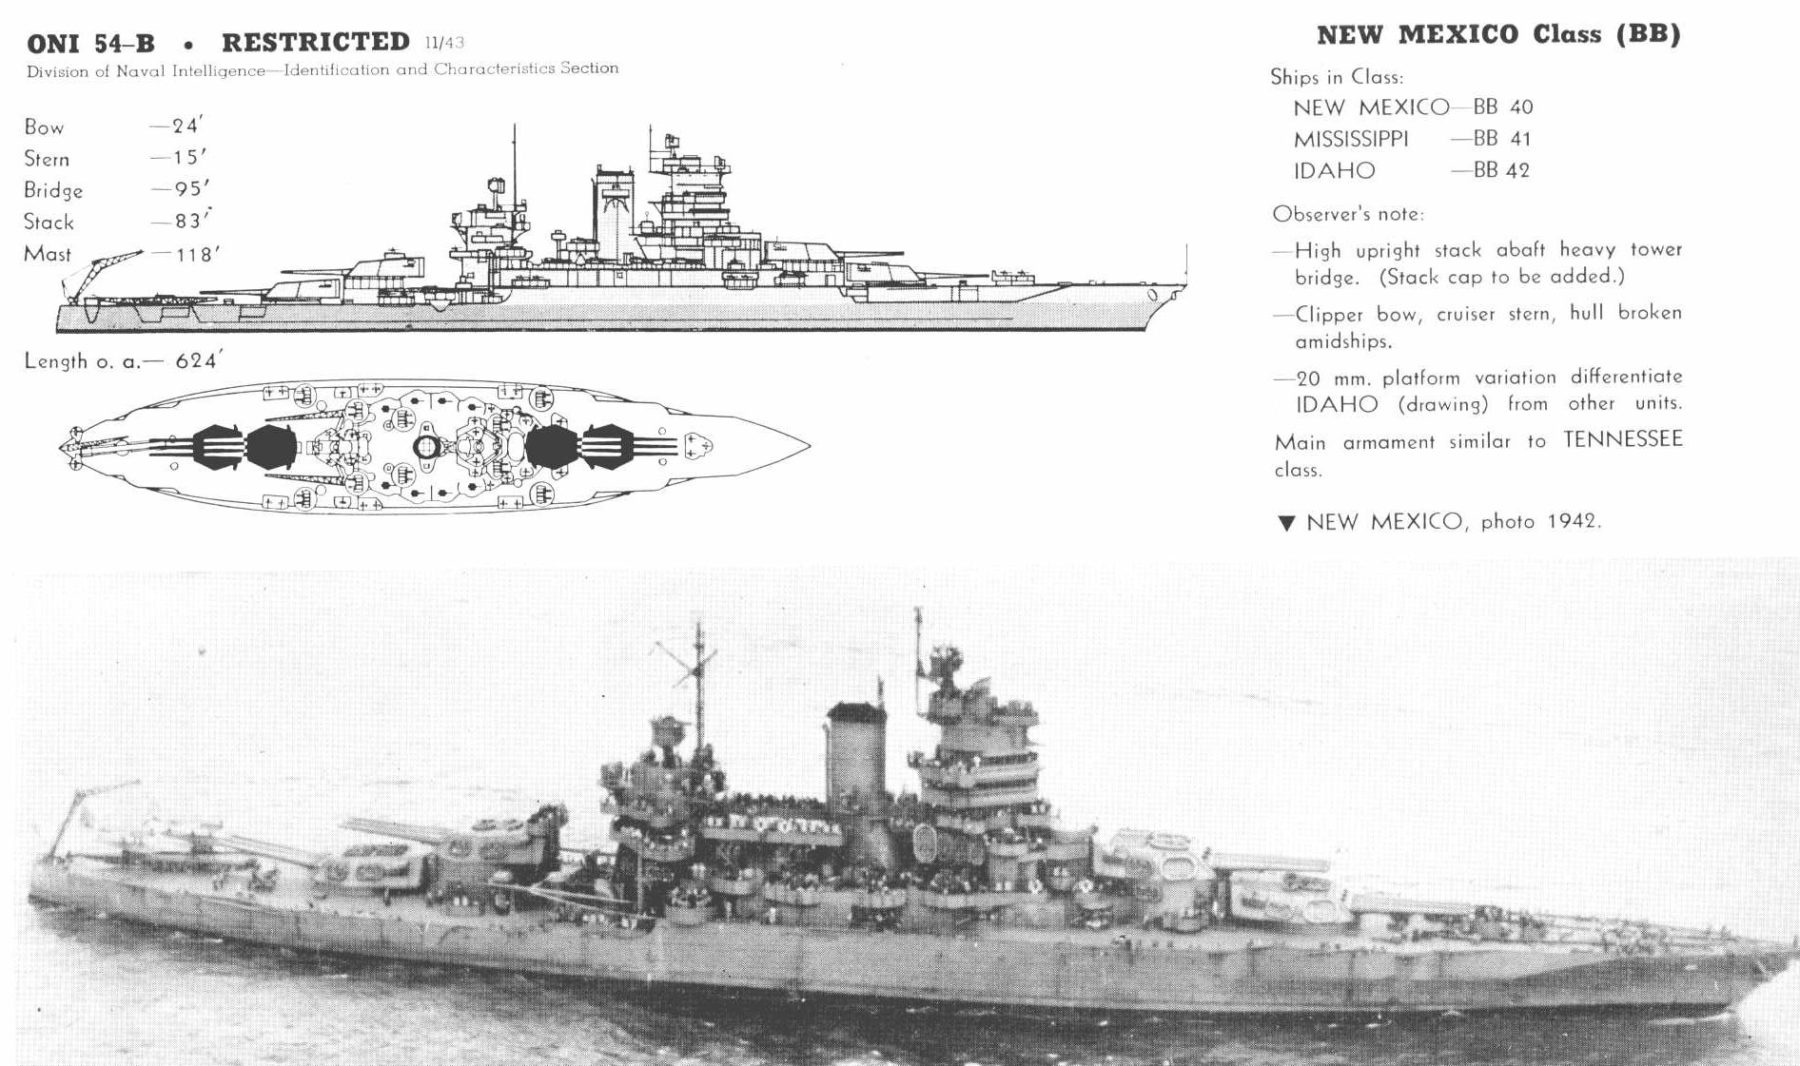 hight resolution of the new mexico only innovated by a clipper bow and the class was part of a design concept giving the navy a homogeneous line of battle